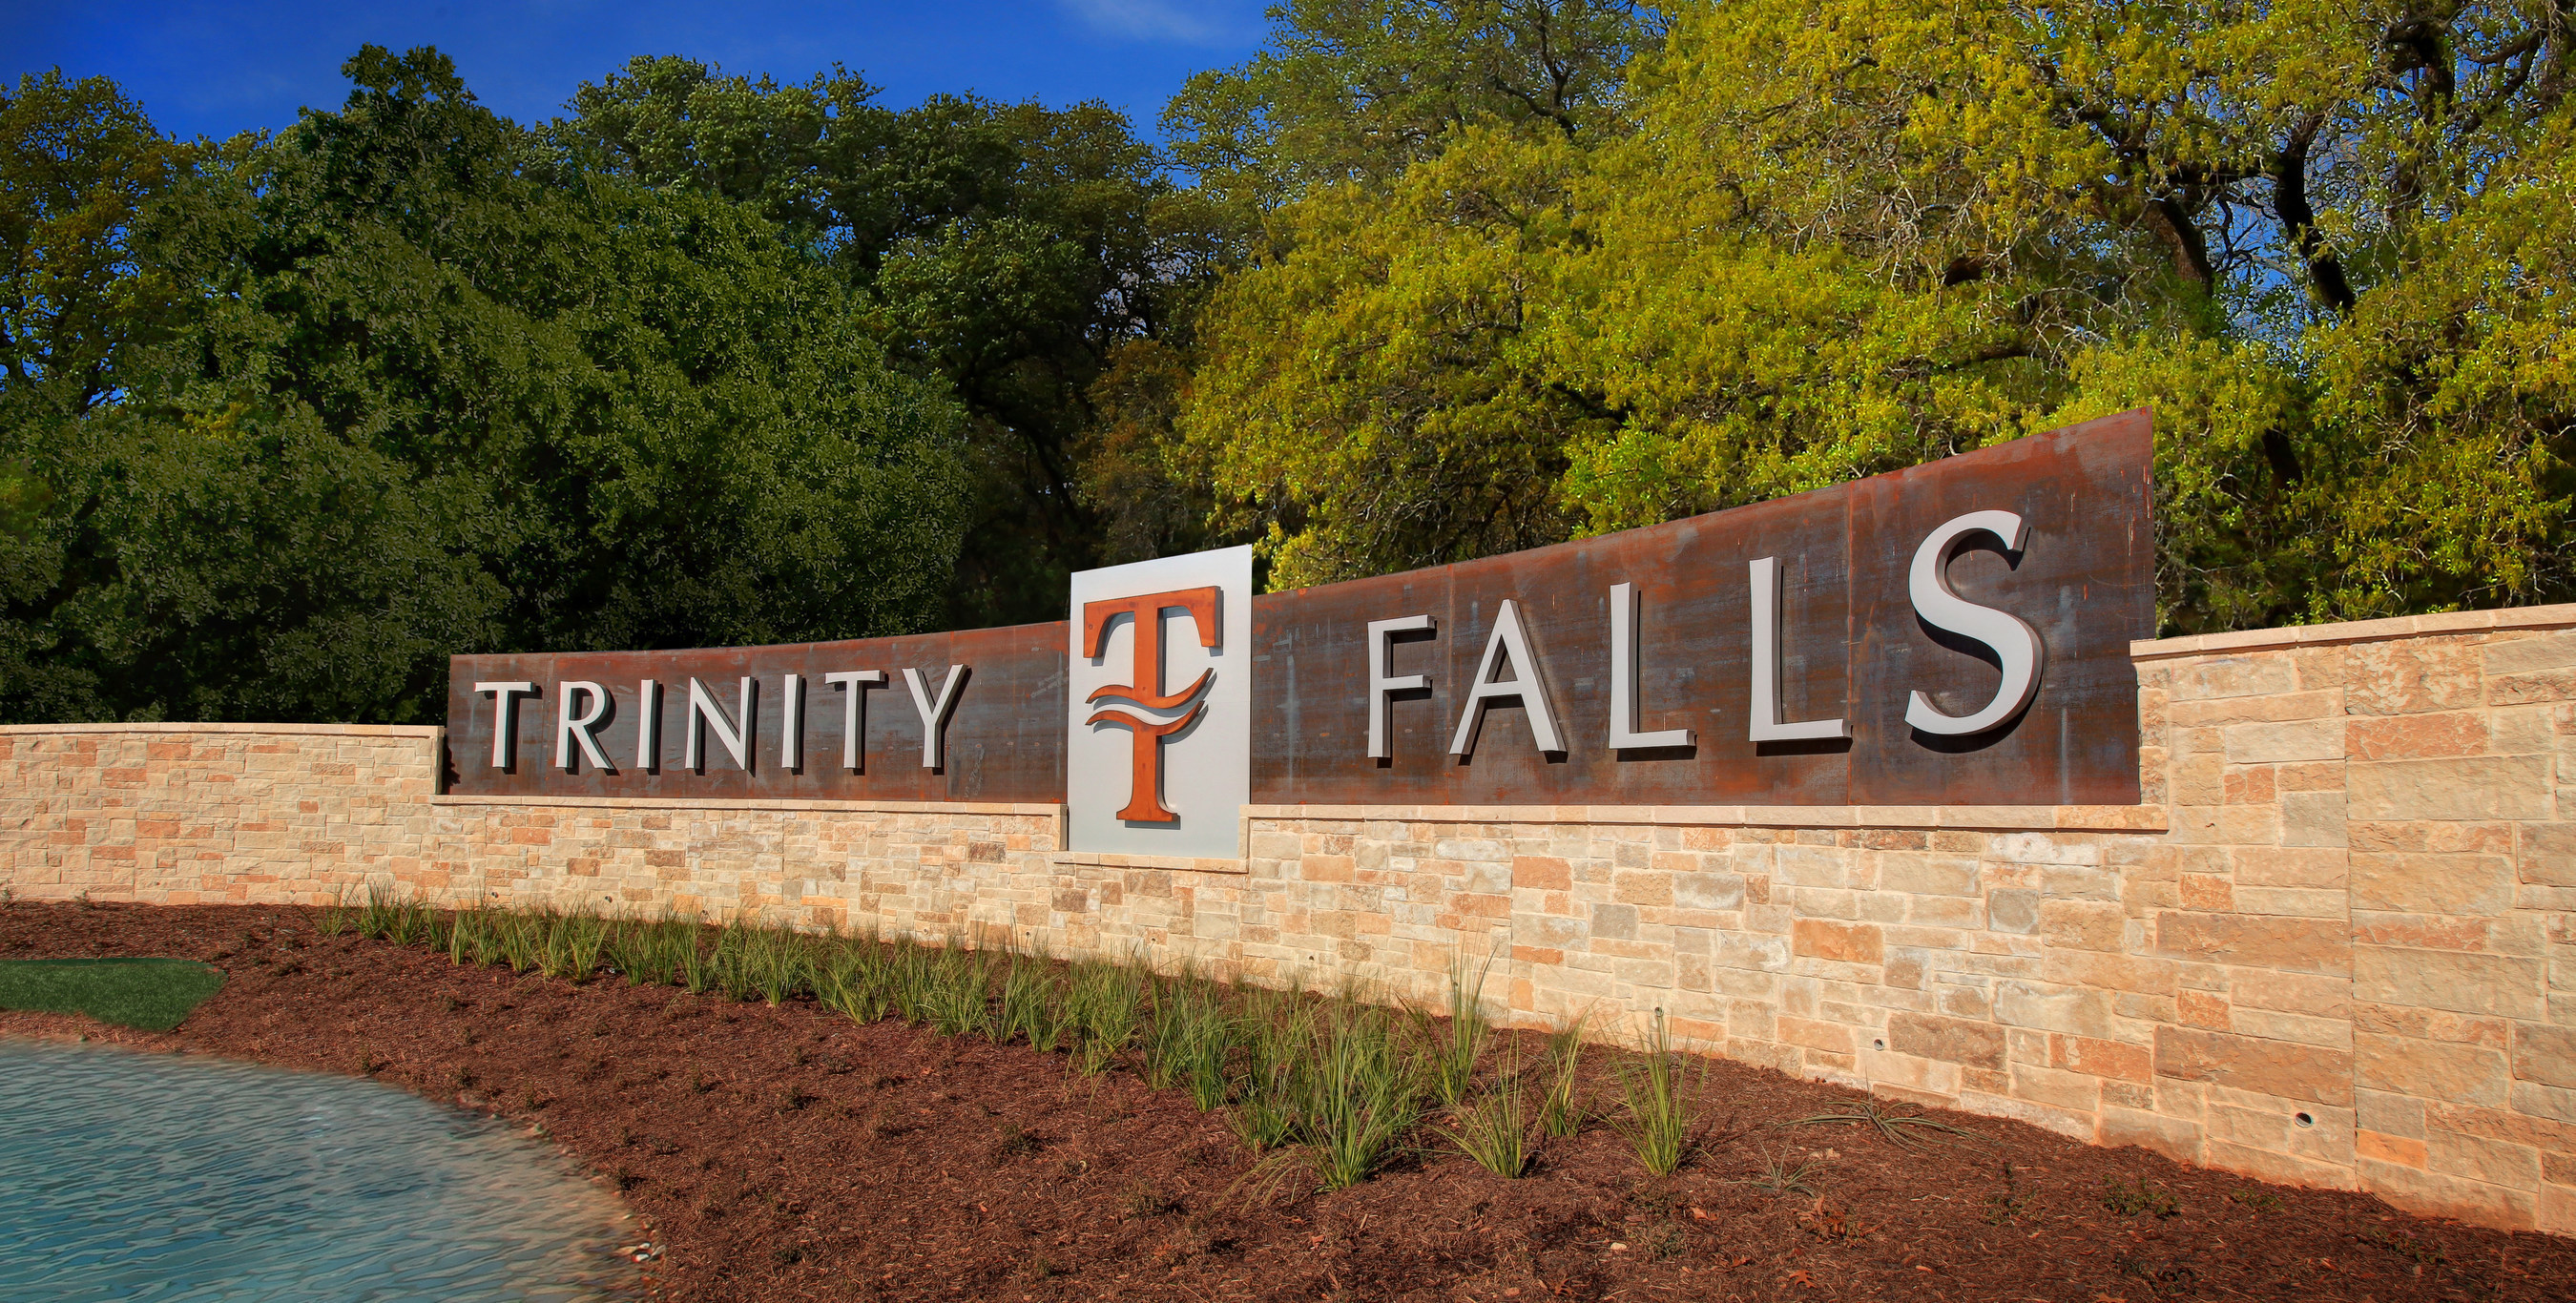 Houston-Based Johnson Development, Tricon Capital Group Acquire McKinney, Texas Master-Planned Community of Trinity Falls